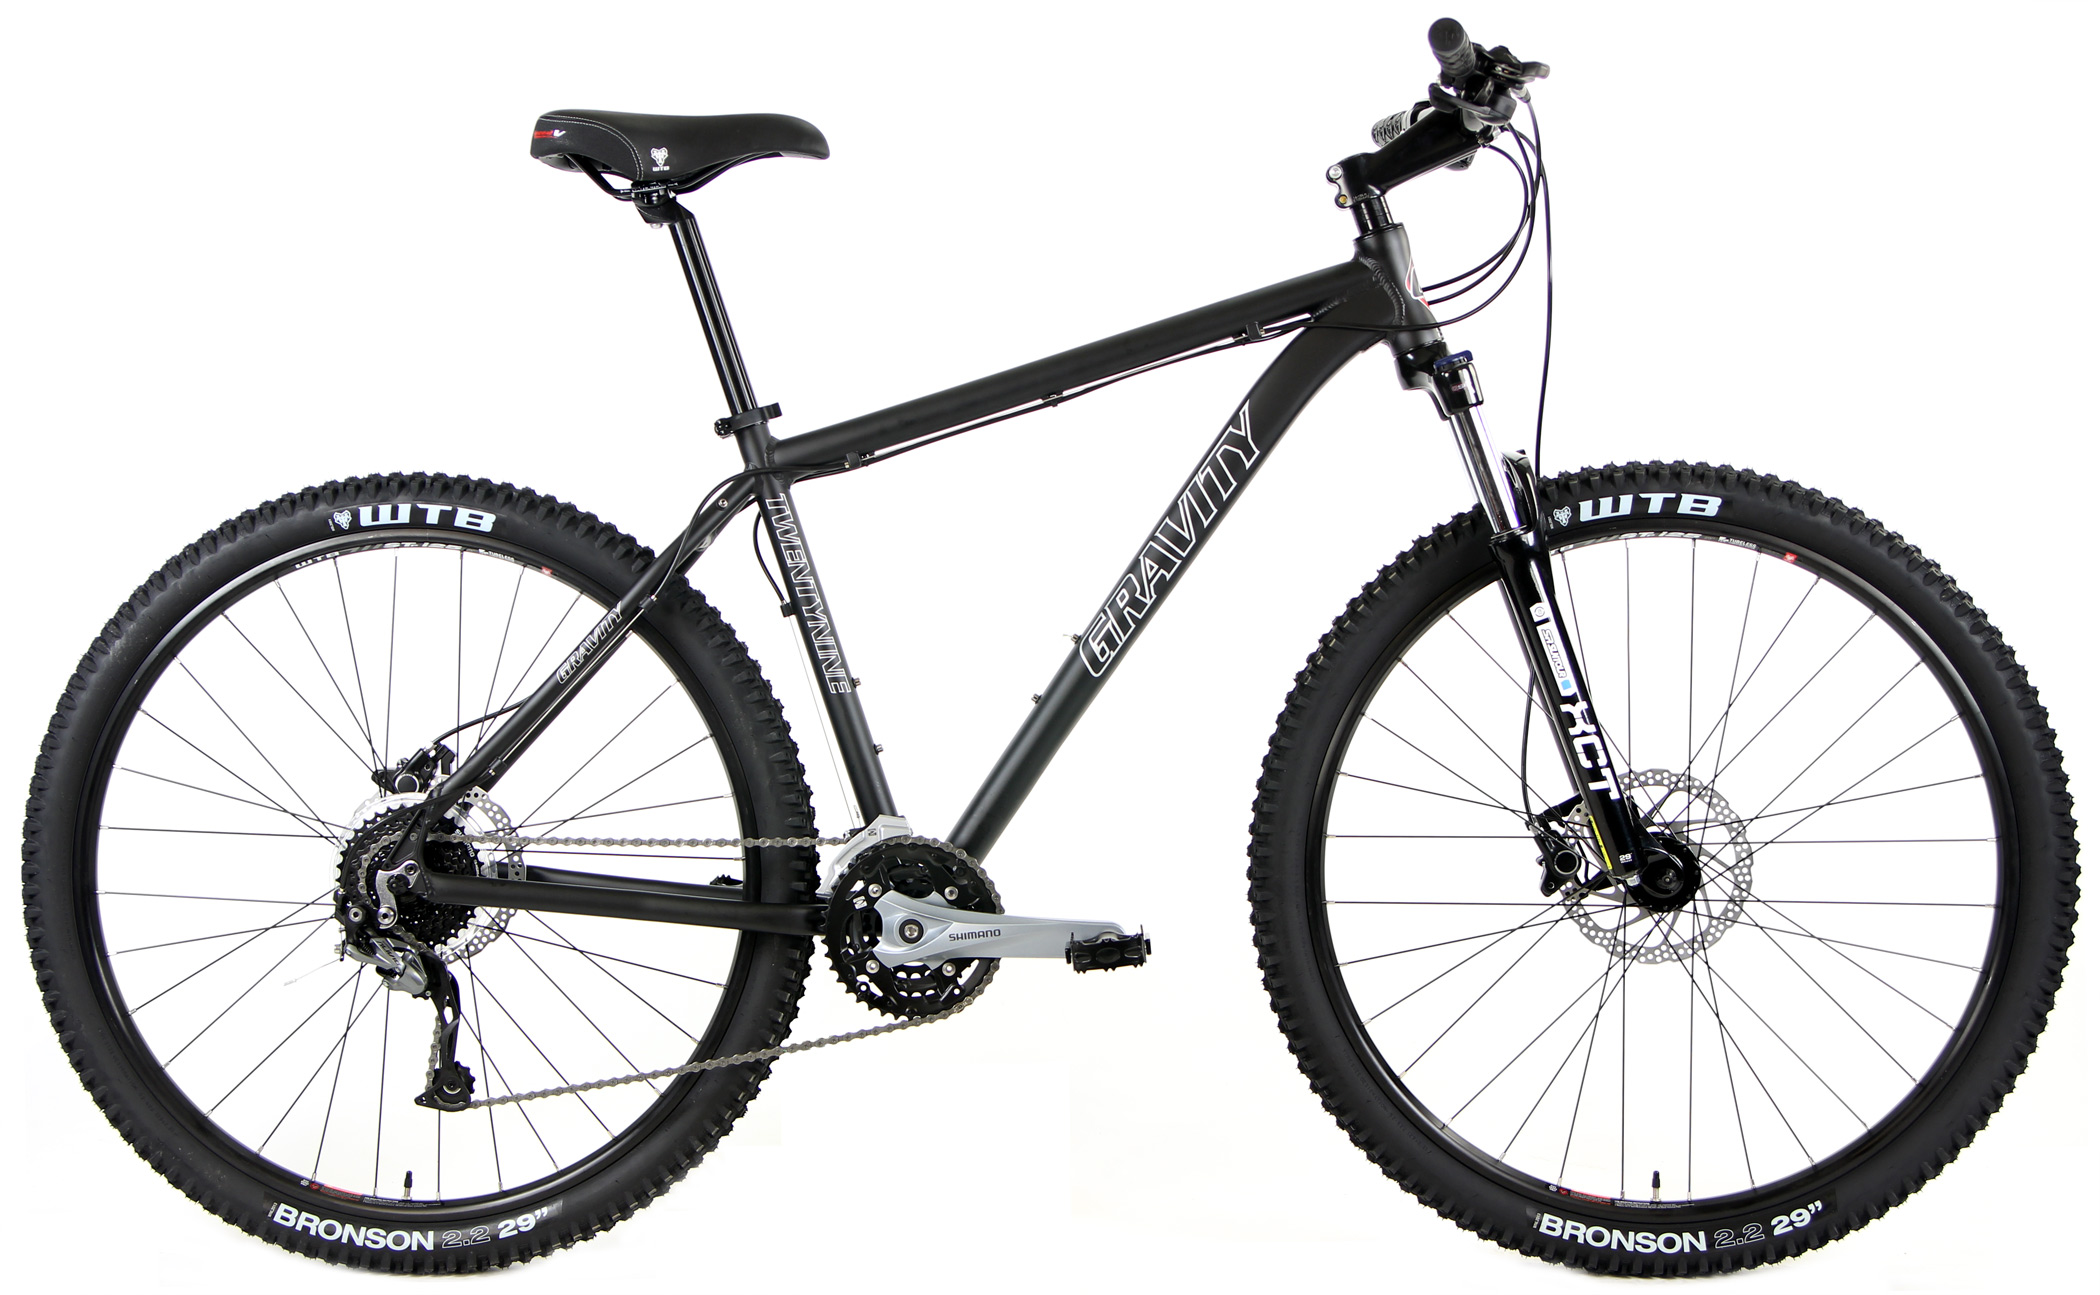 Bikes Gravity Point 2 Hardtail Mountain Bike XCT fork and Shimano Equipped Image